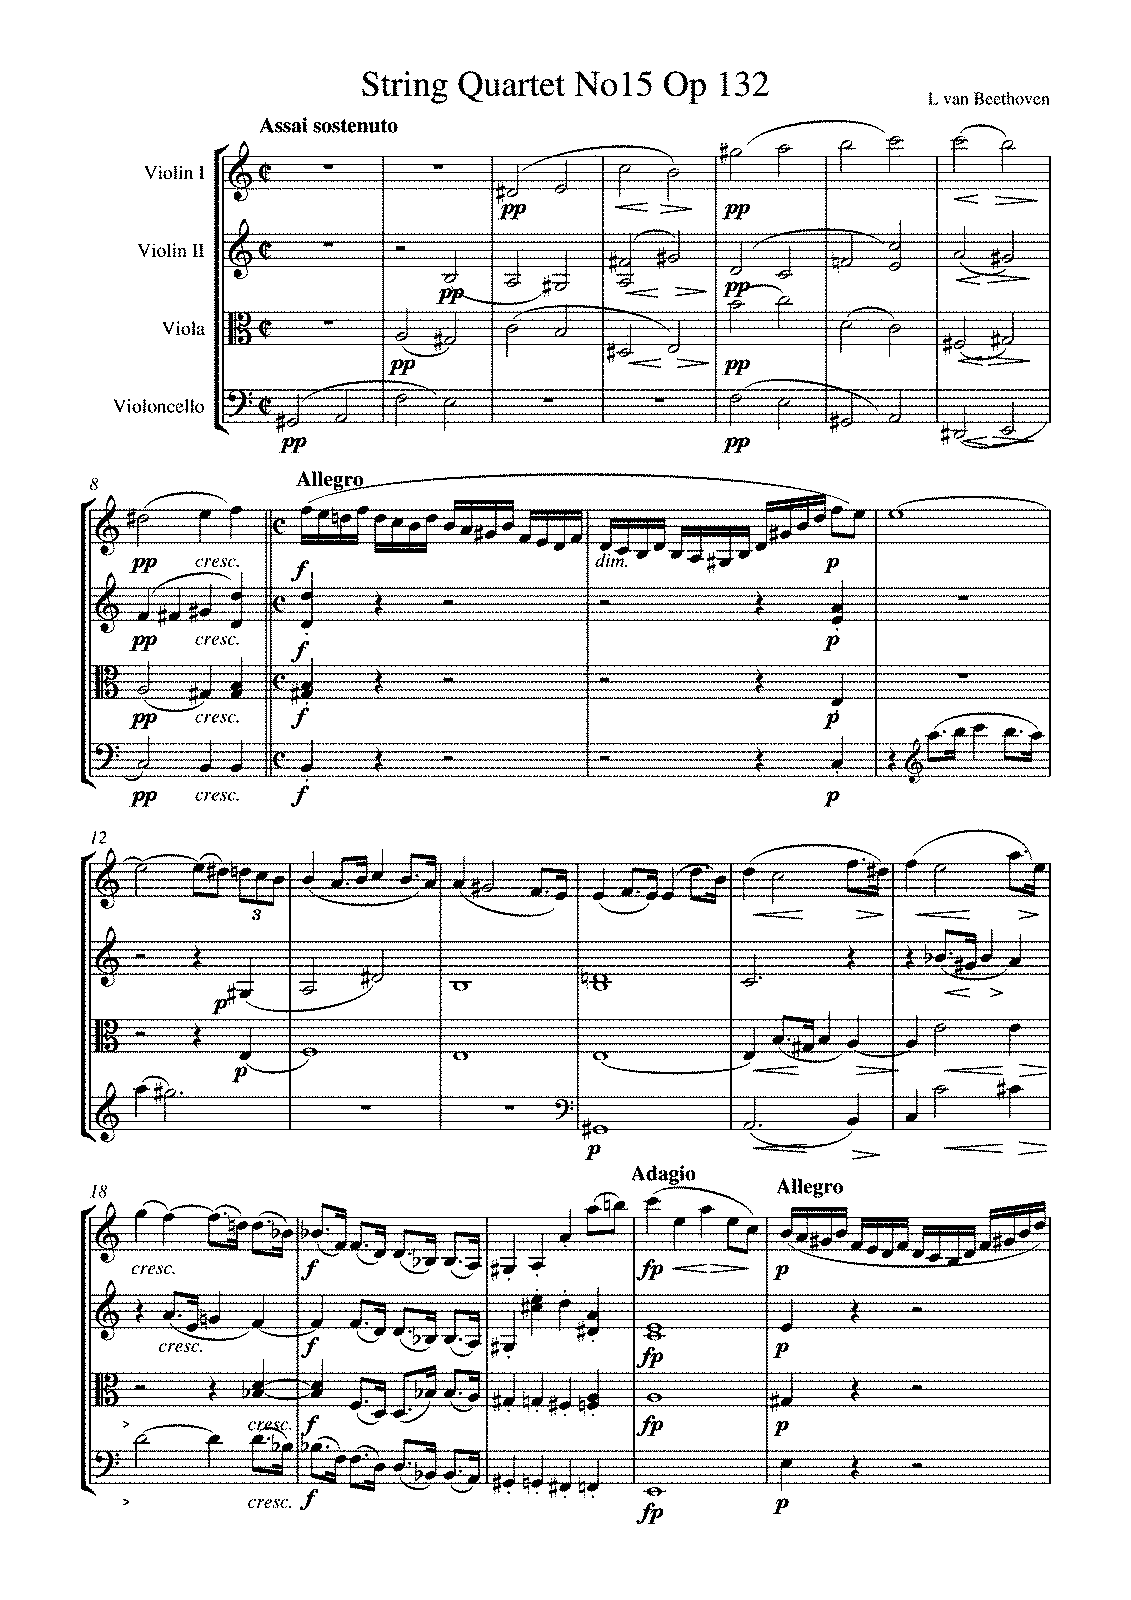 Strng qt no.15 1st movement.pdf